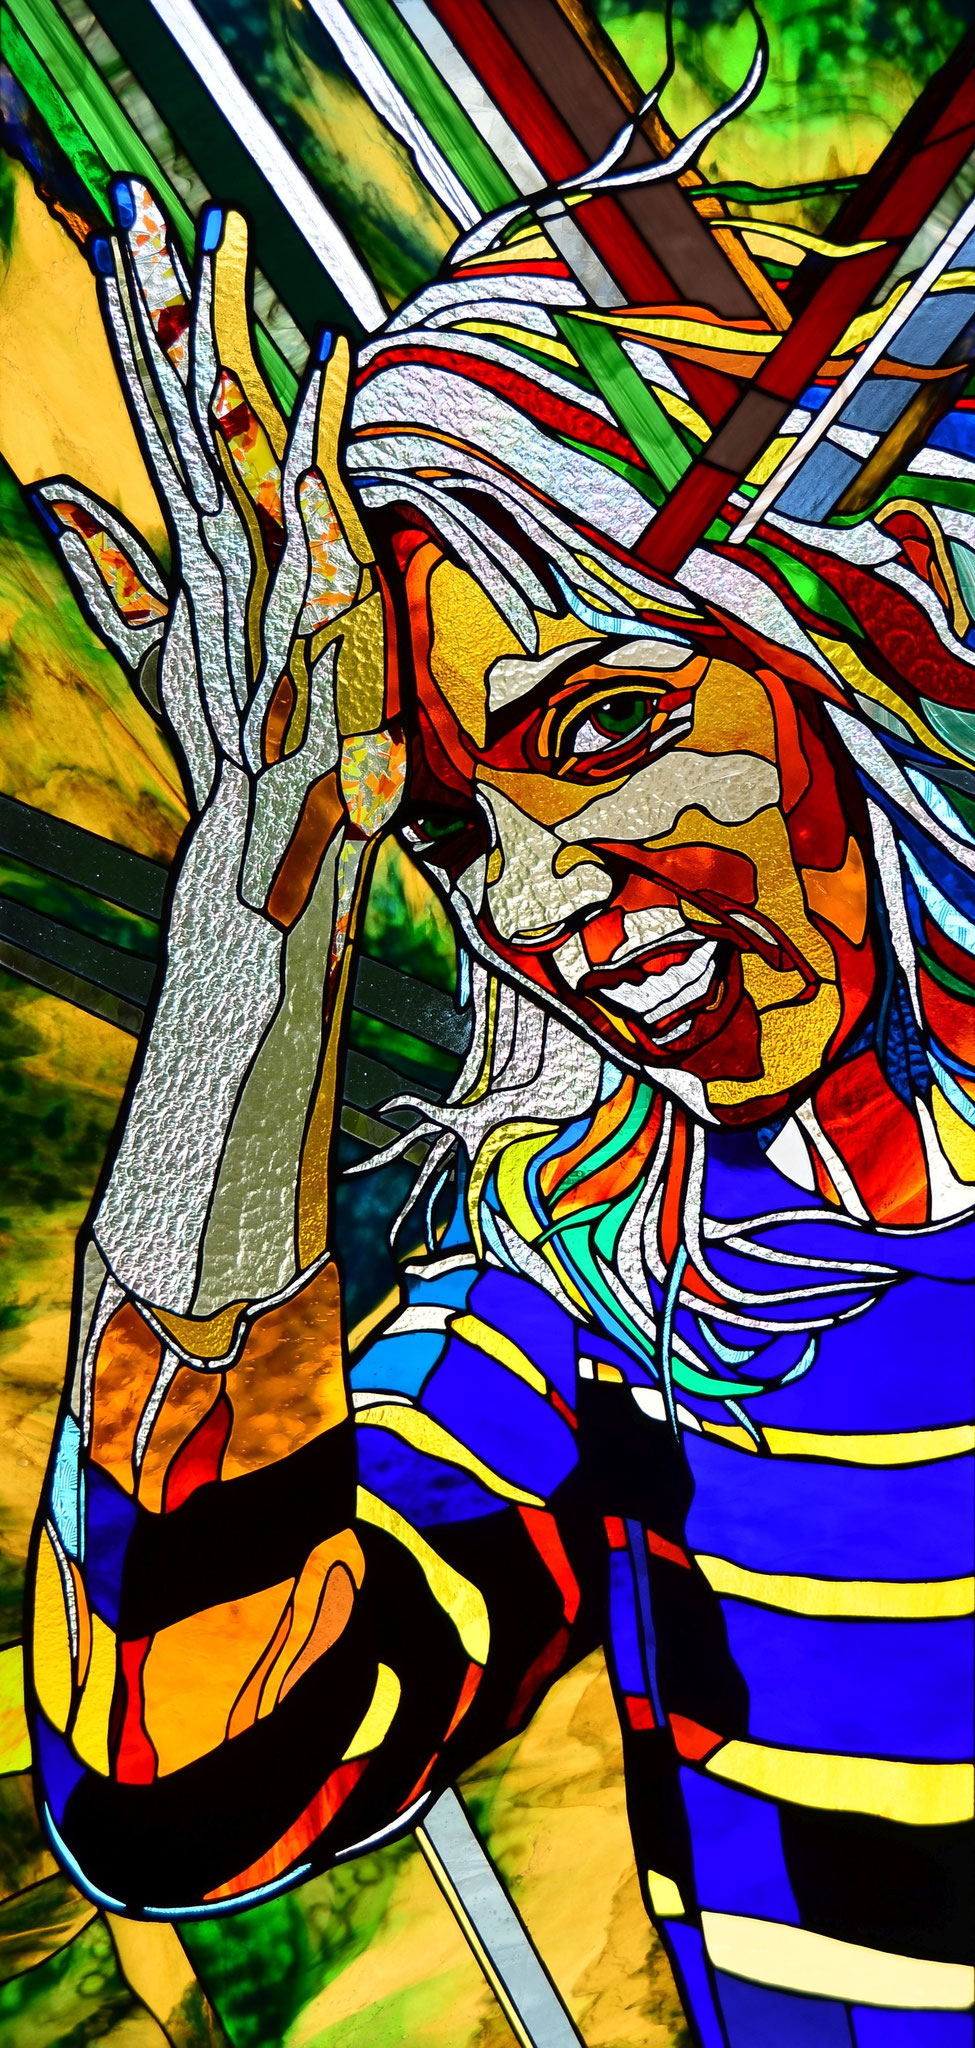 DUHH_24 x 49  inches stained glass, photo by Lloyd Howell